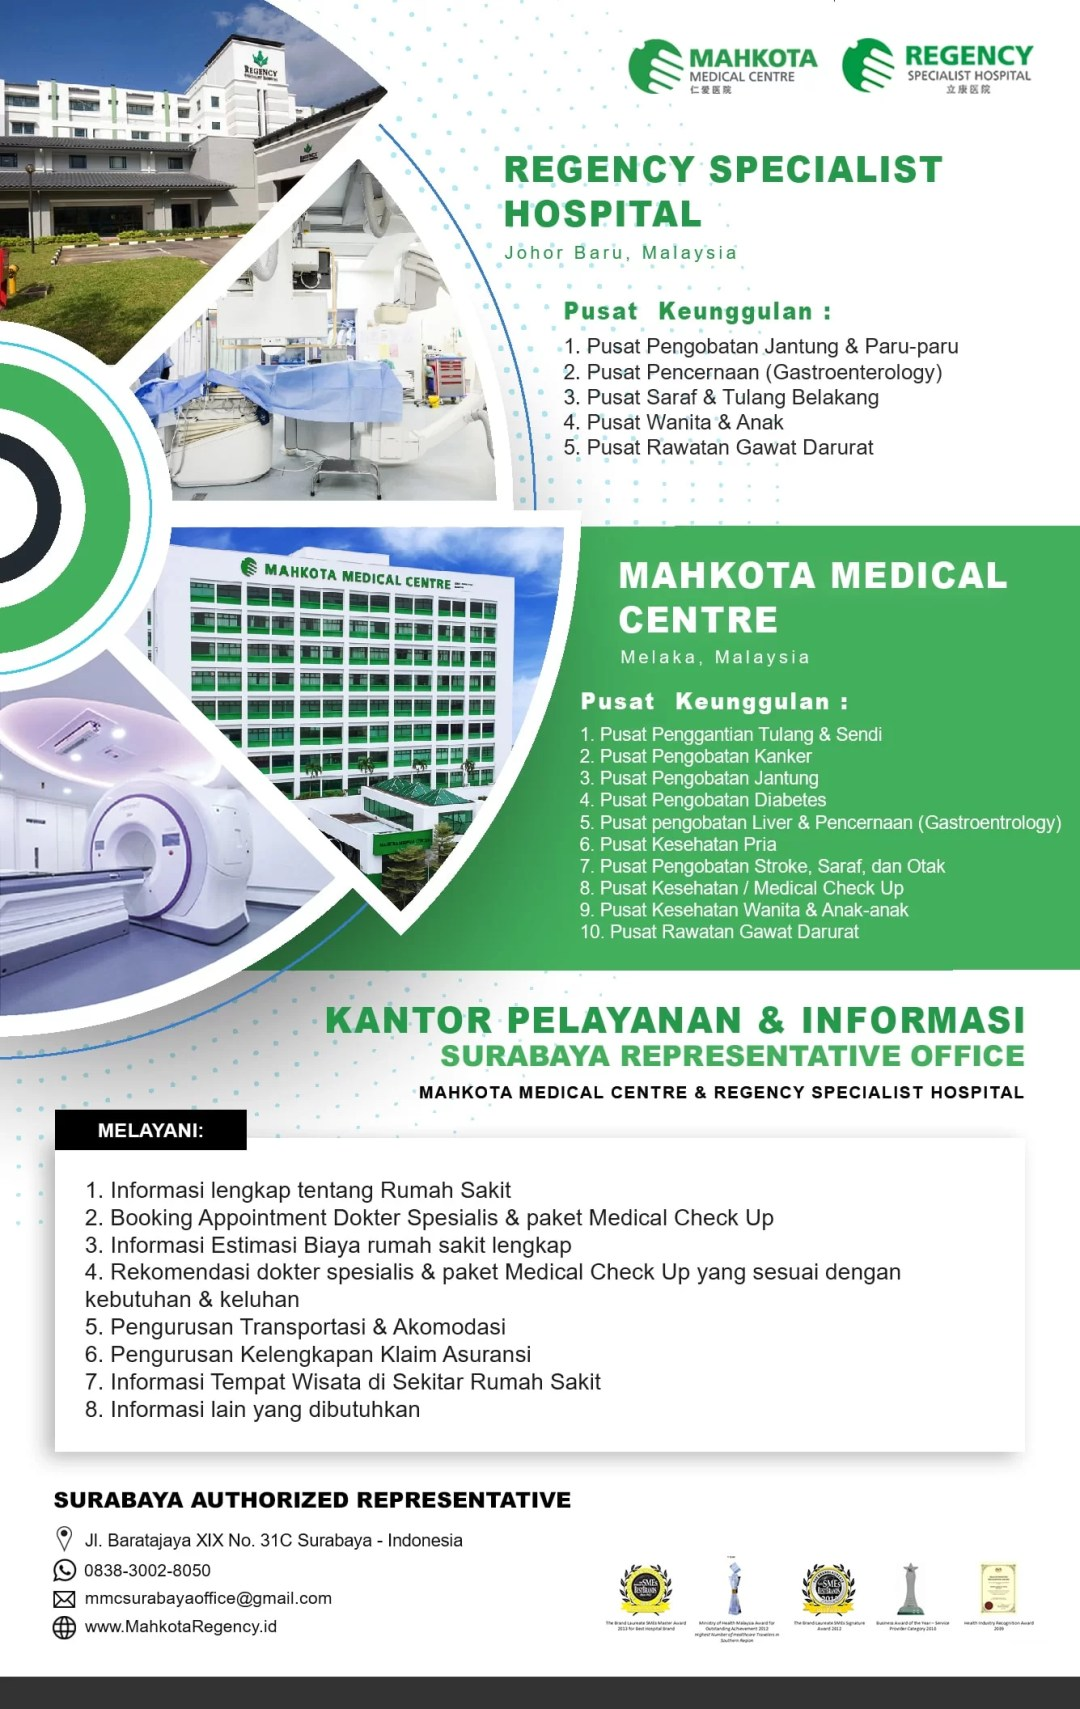 Bantuan Pengaturan Akomodasi GRATIS via Rep Office RS Mahkota - Regency Hospital Malaysia 1